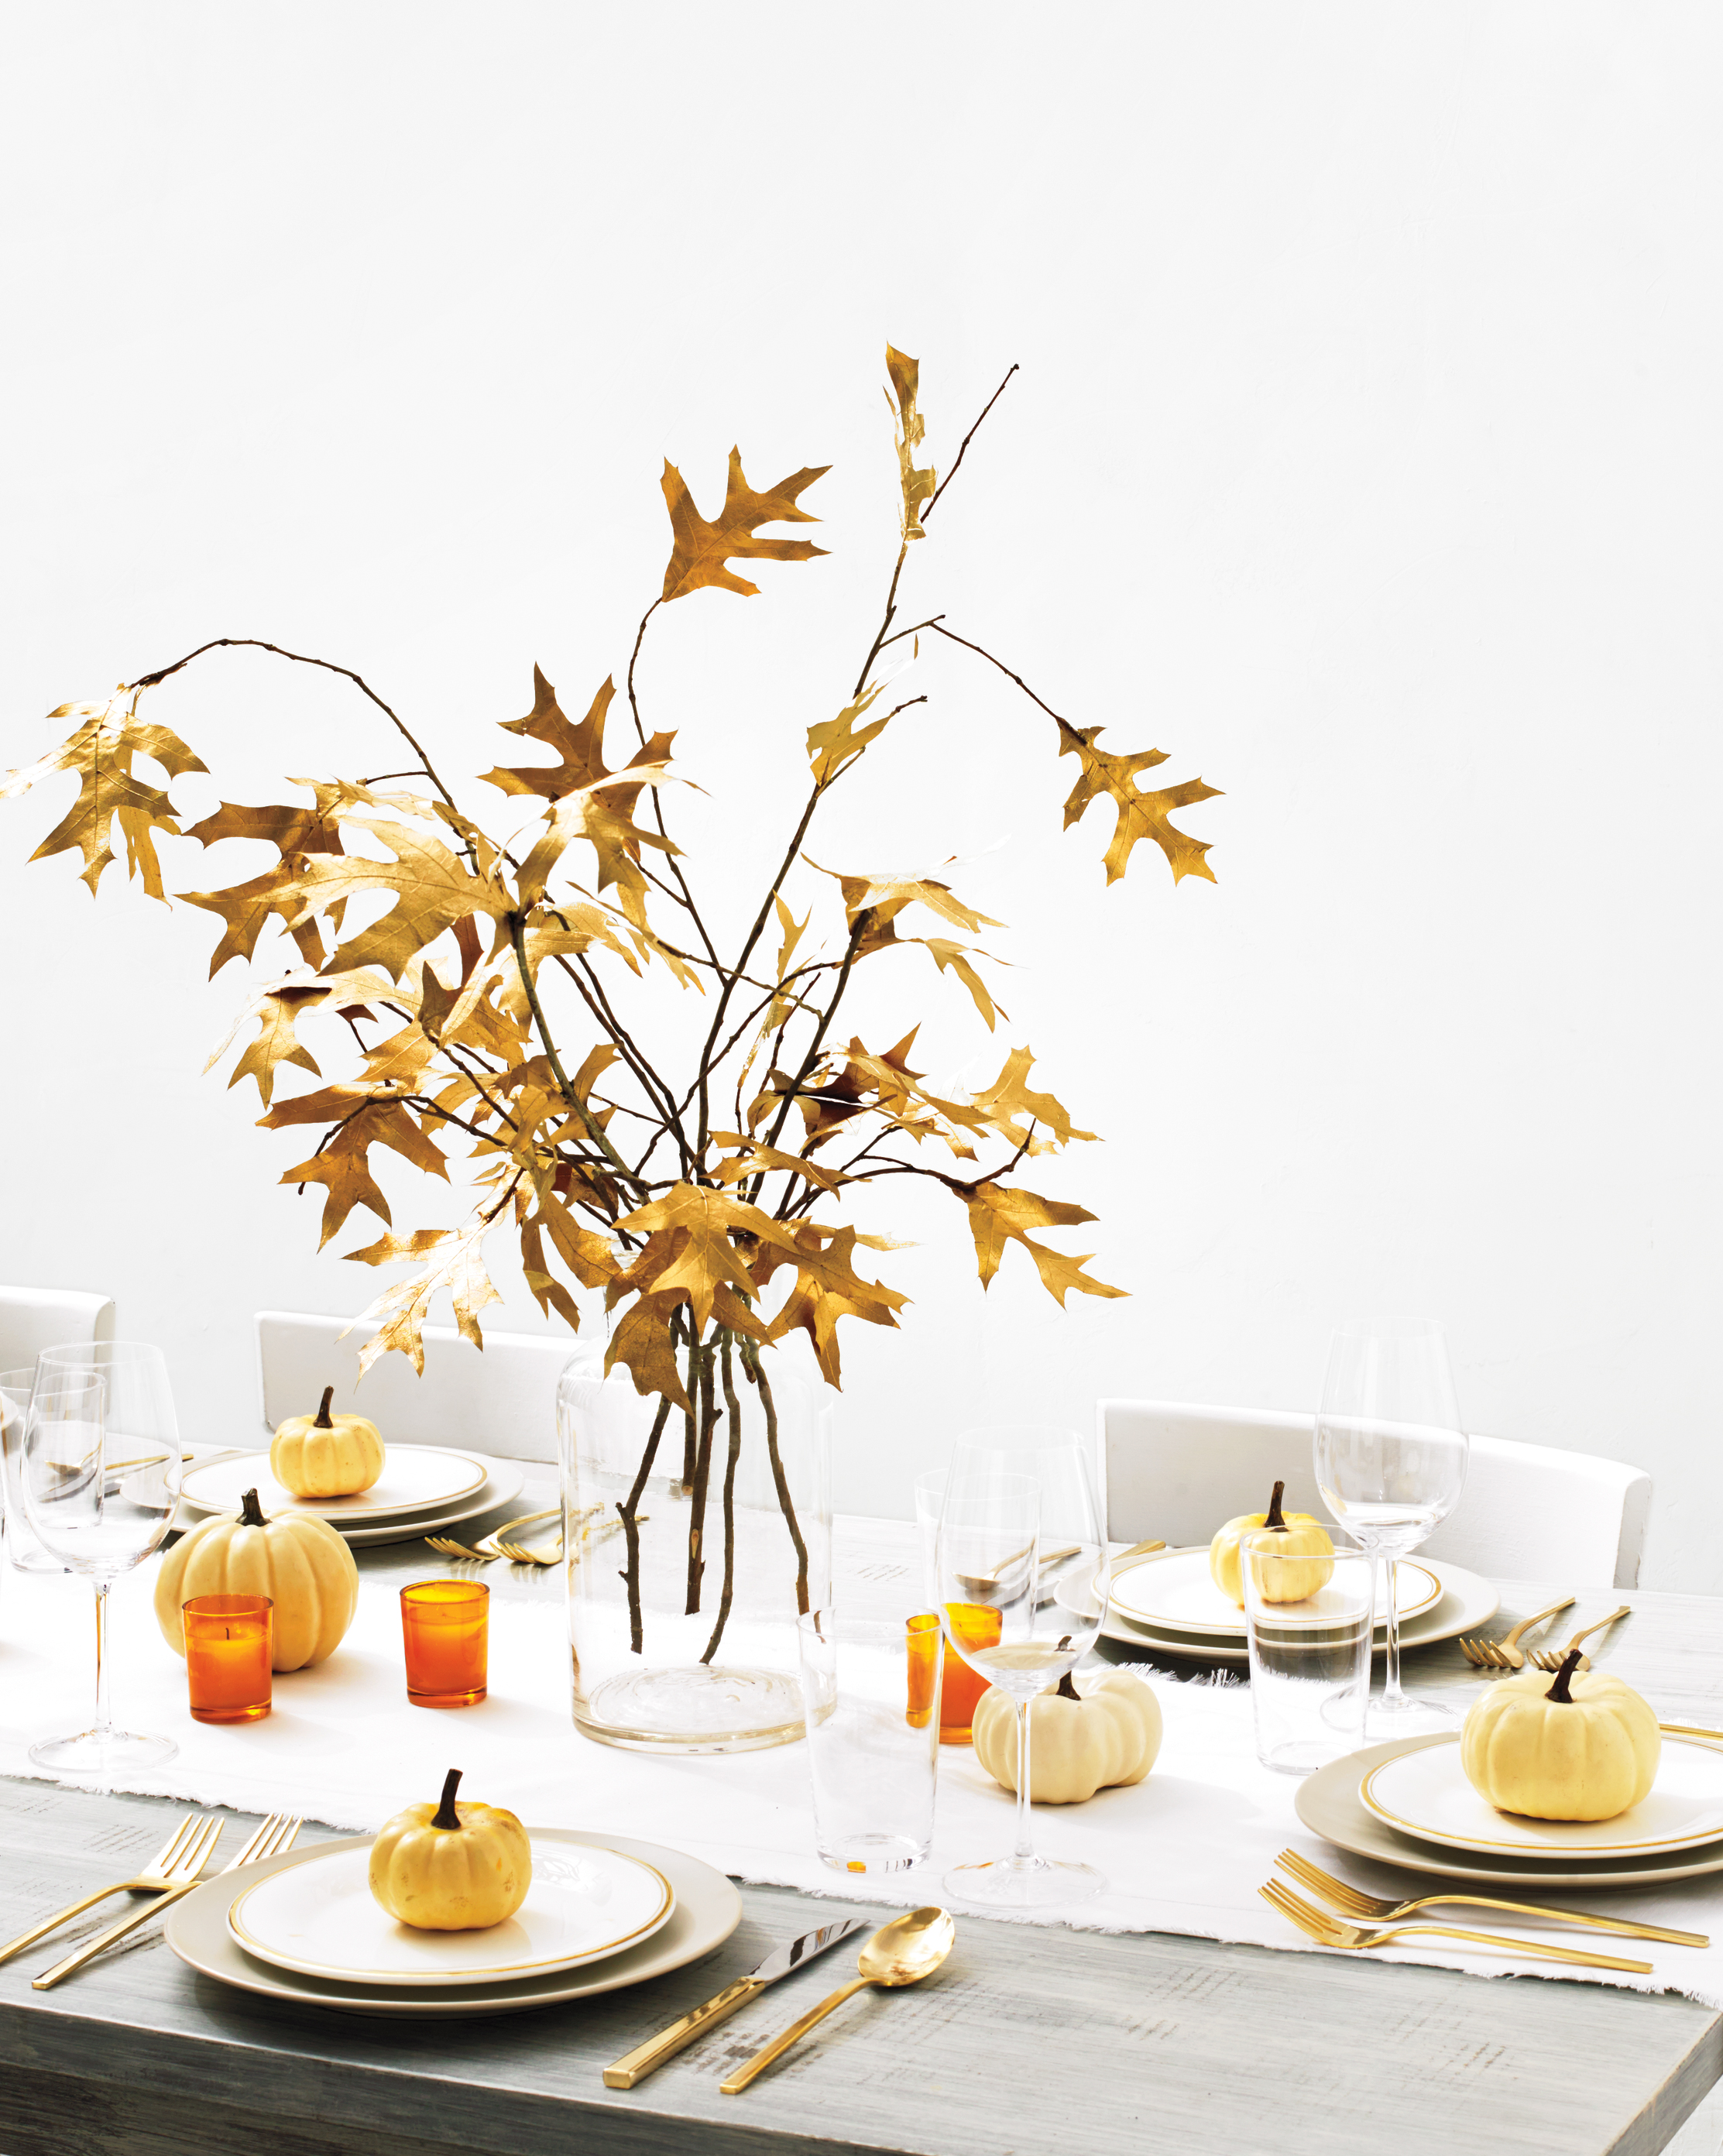 Gilded Table Setting